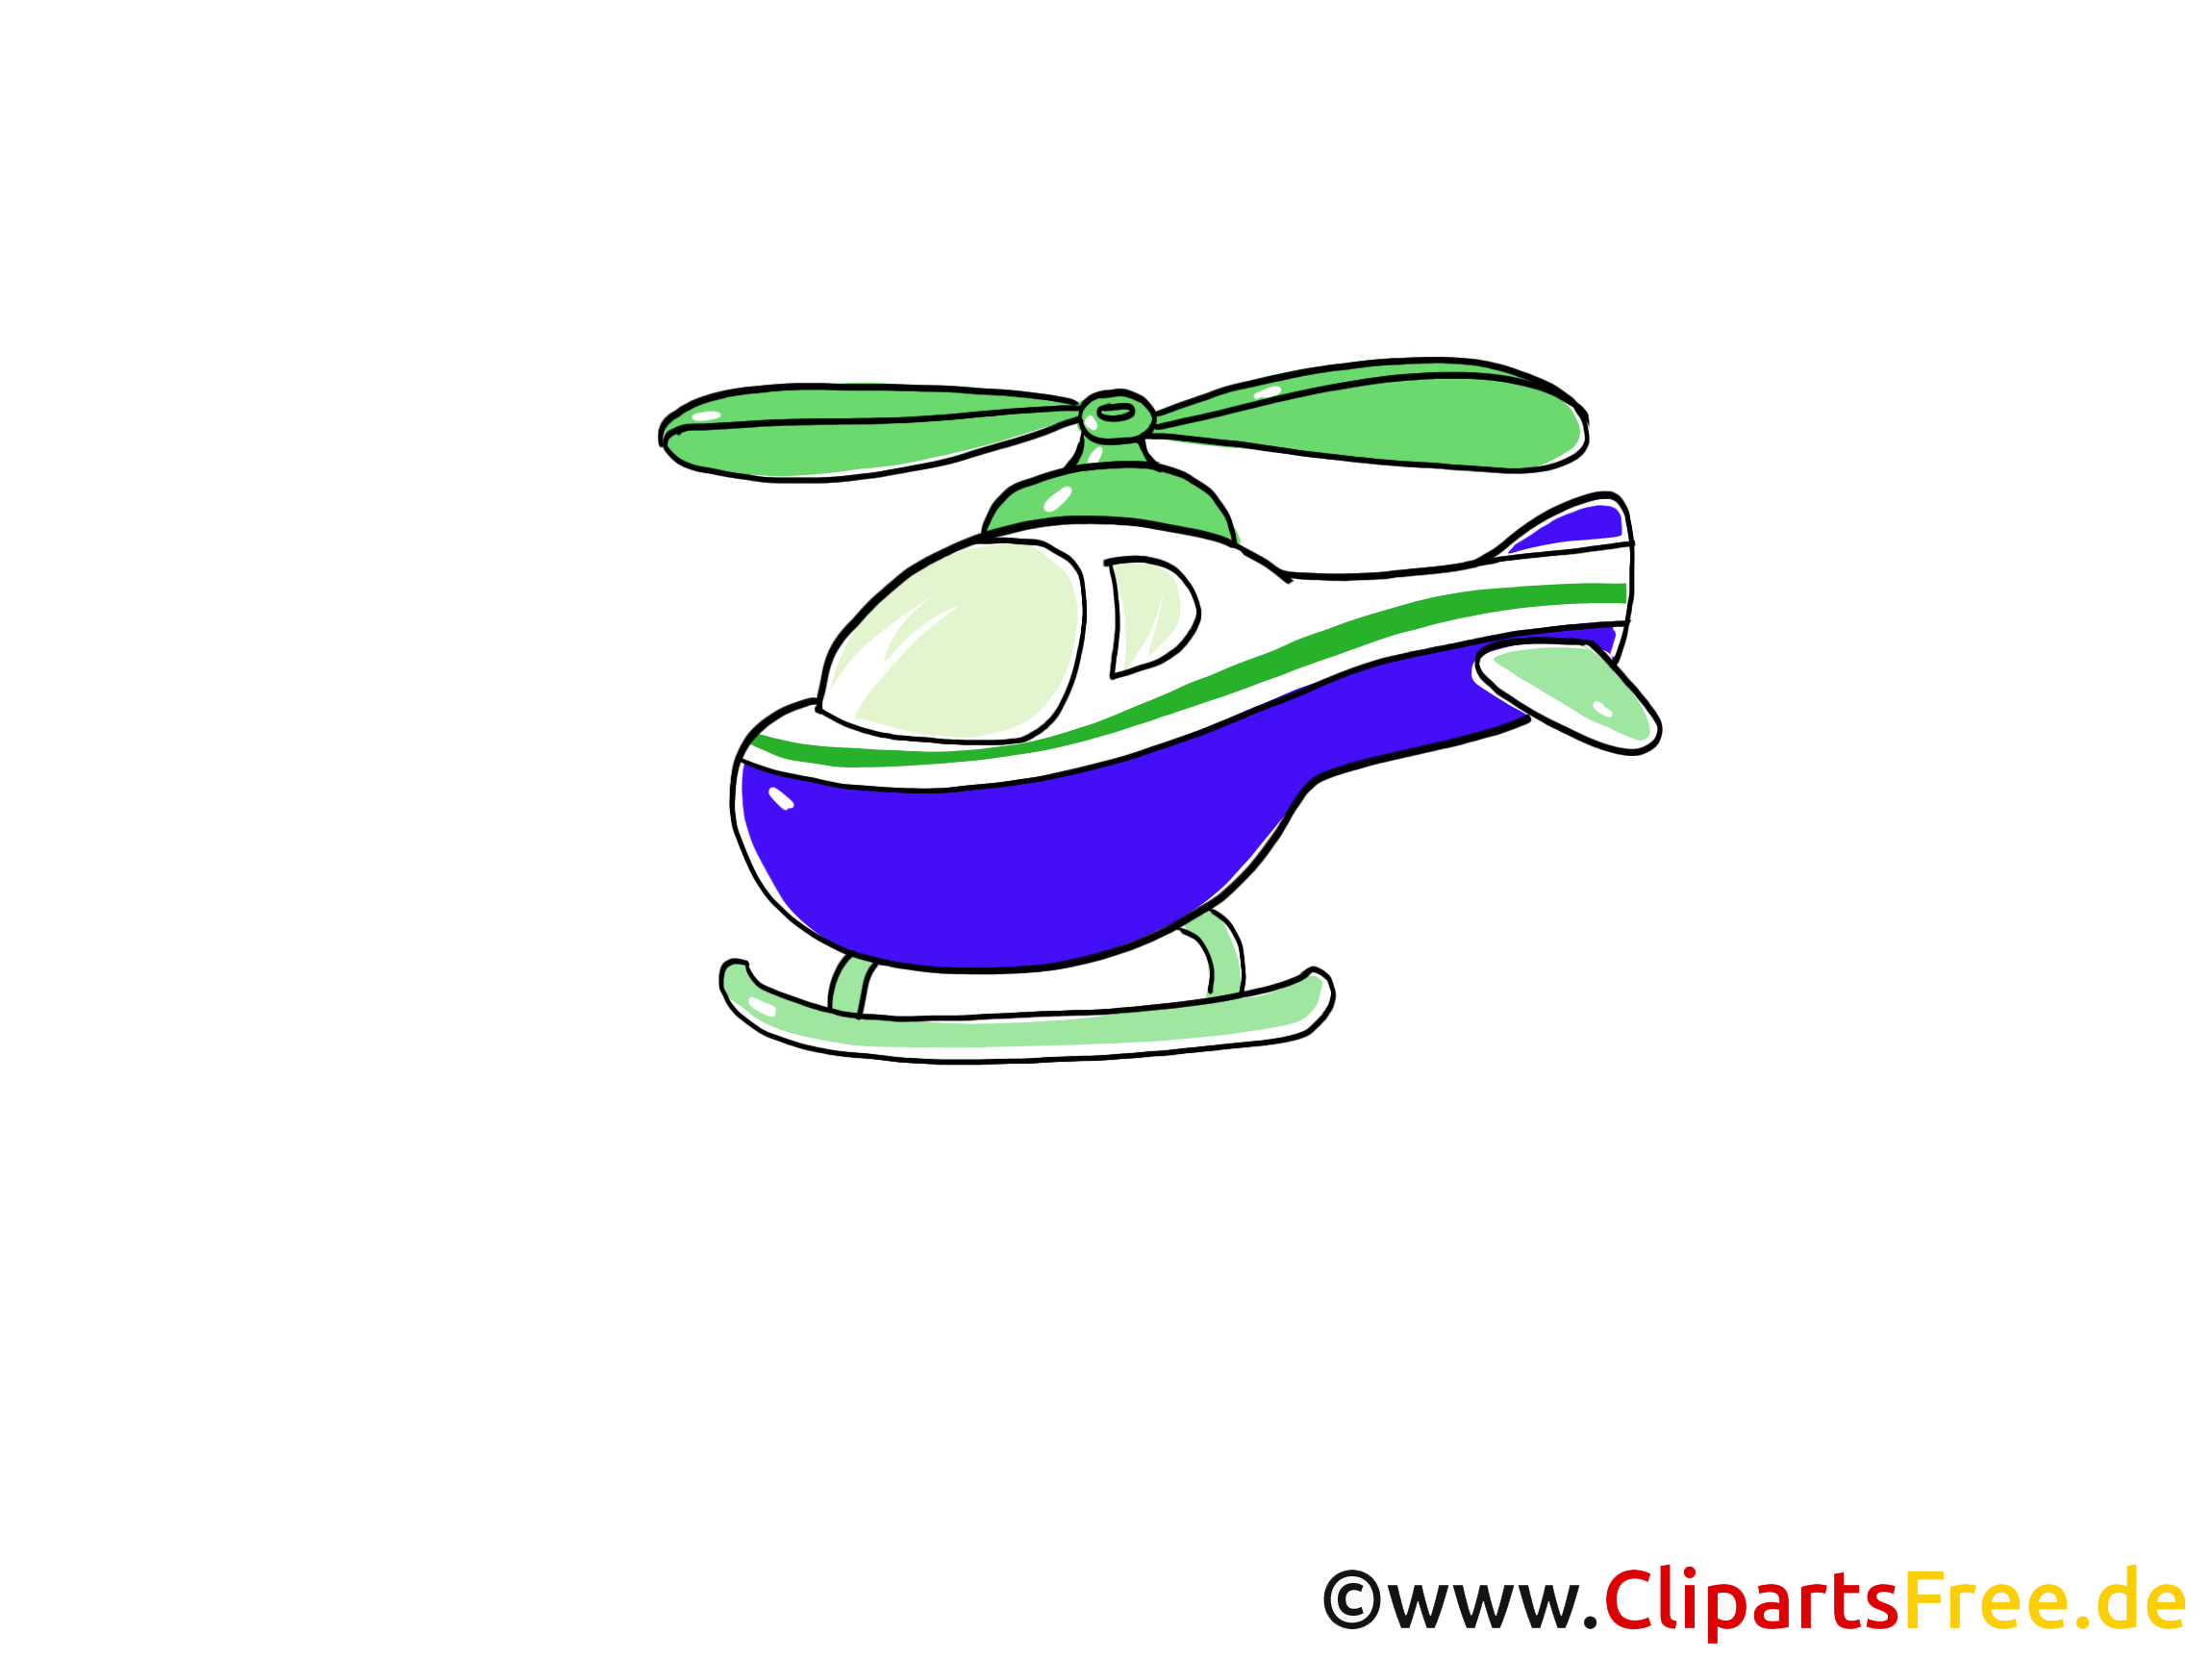 Helicopter Clip Art, Cartoon, Comic, Graphic, Pic